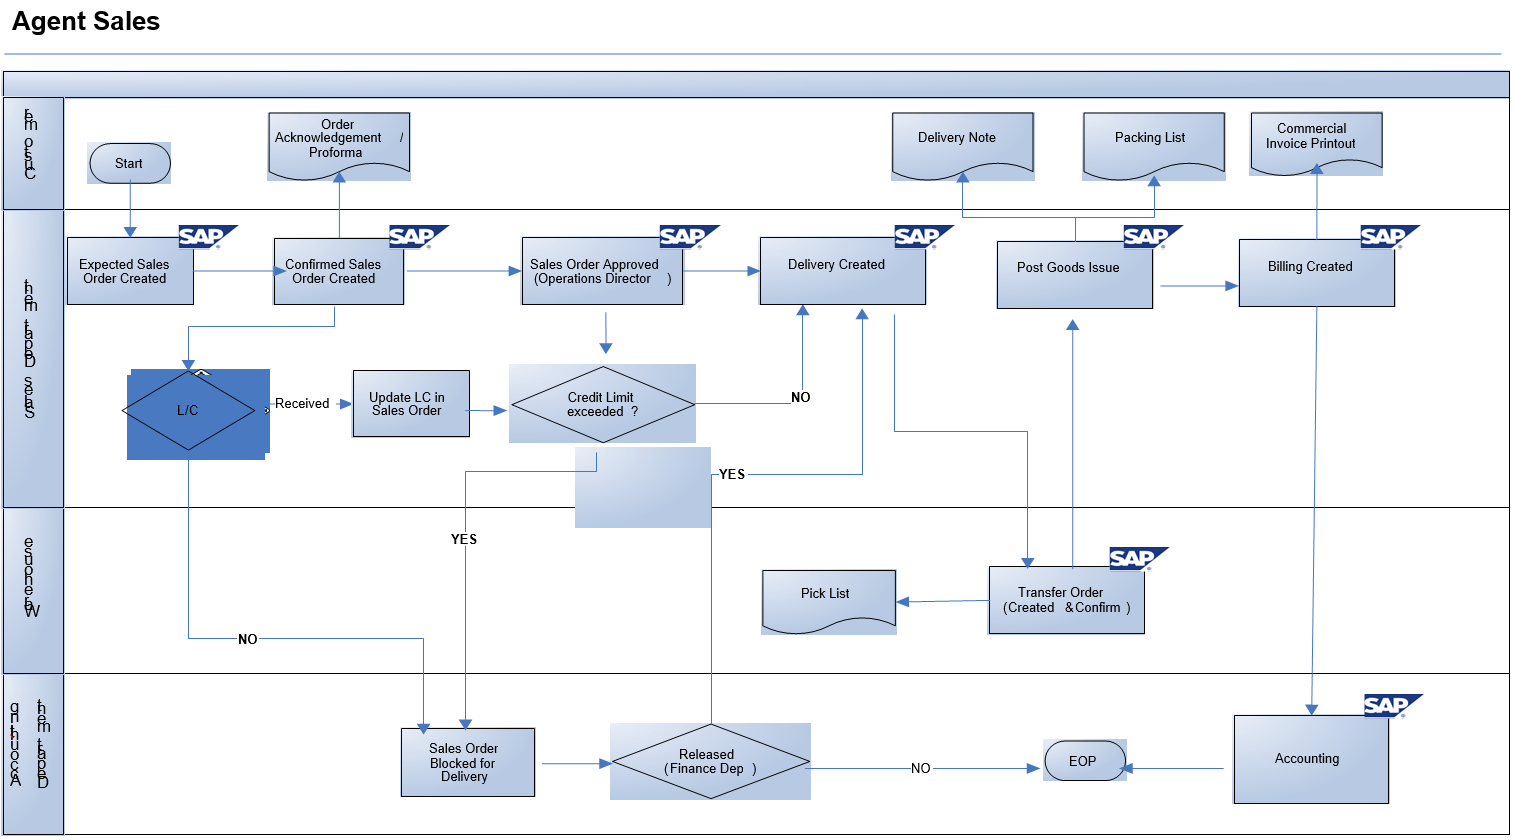 Export Sales Process Flow Diagram in SAP SD